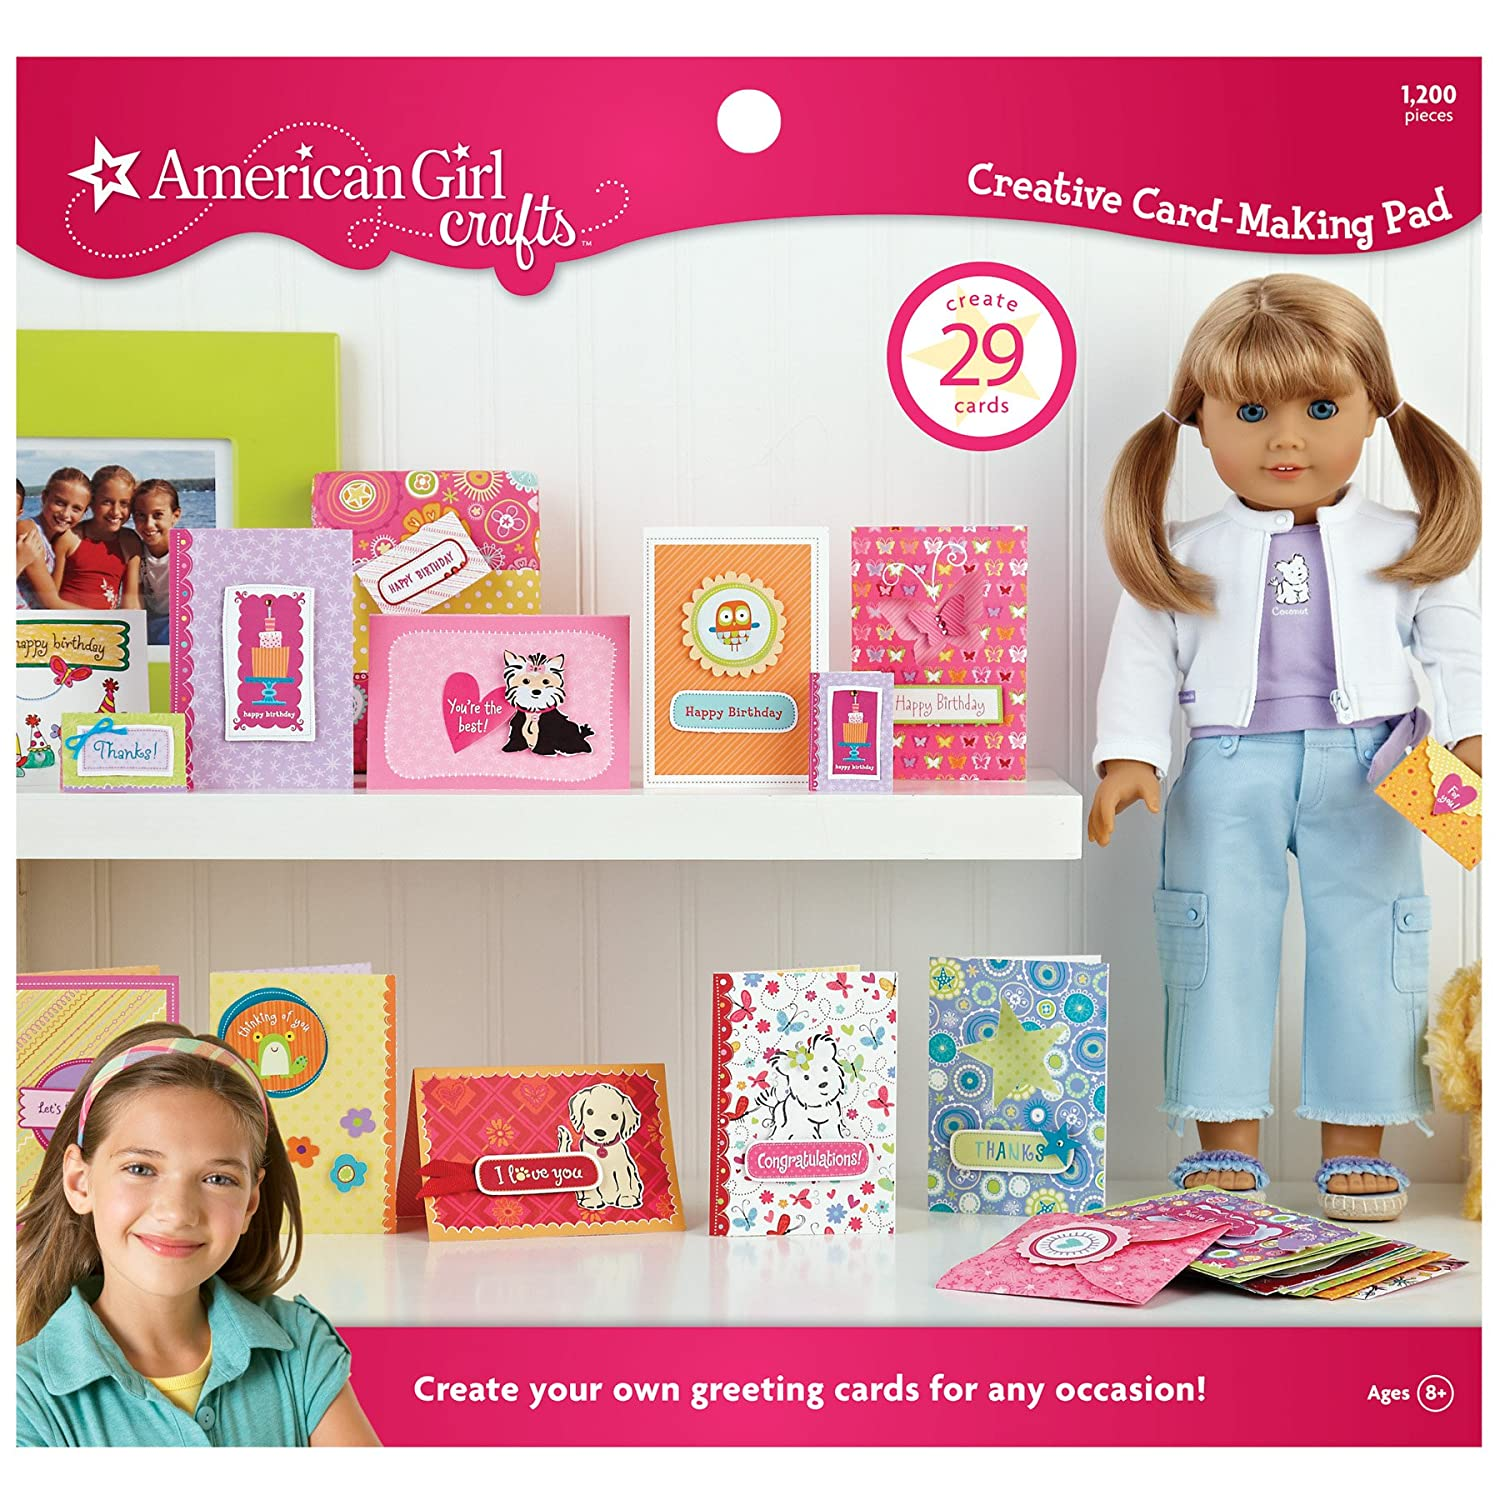 American Girl Crafts Creative Card-Making Pad